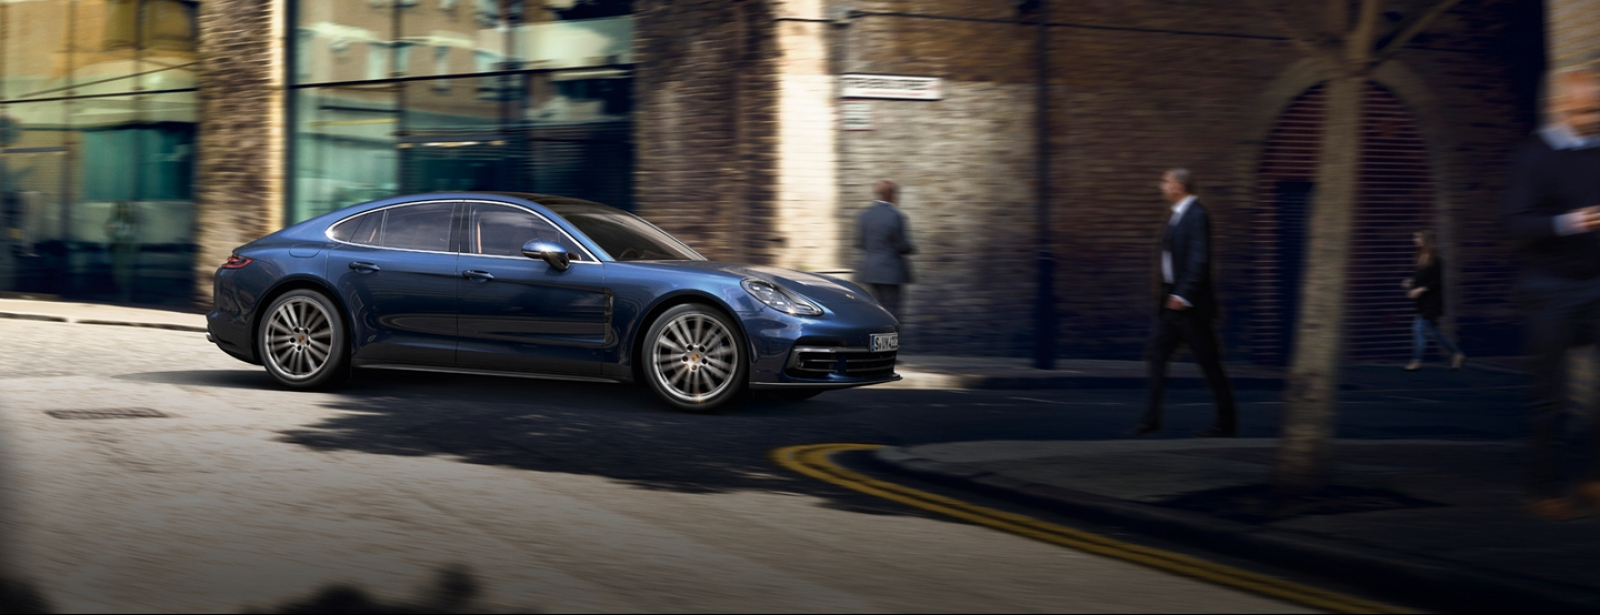 Porsche - Panamera 4S Executive - Courage changes everything.